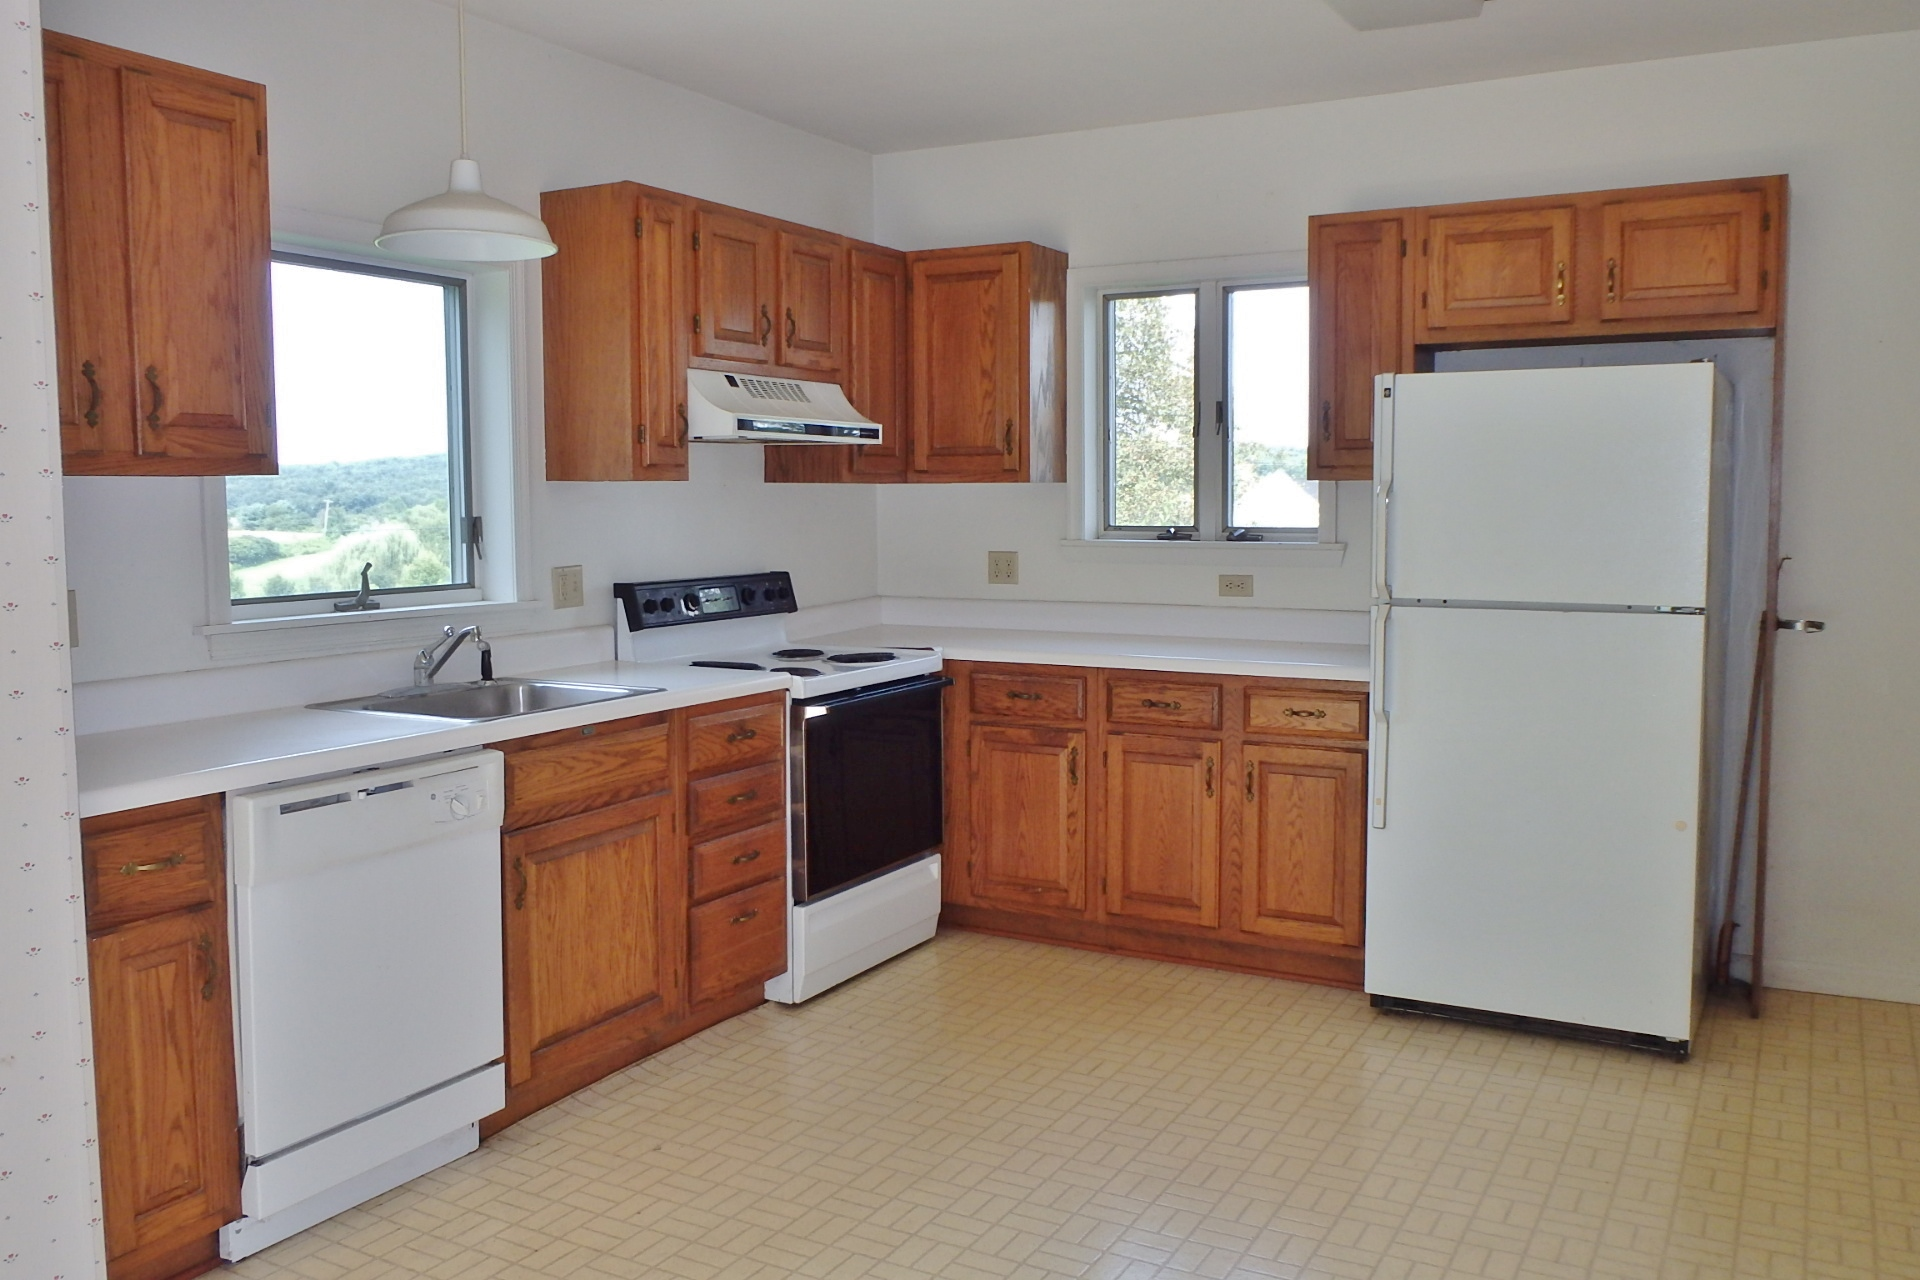 Kitchen photo of 158 W. Ridge Lane